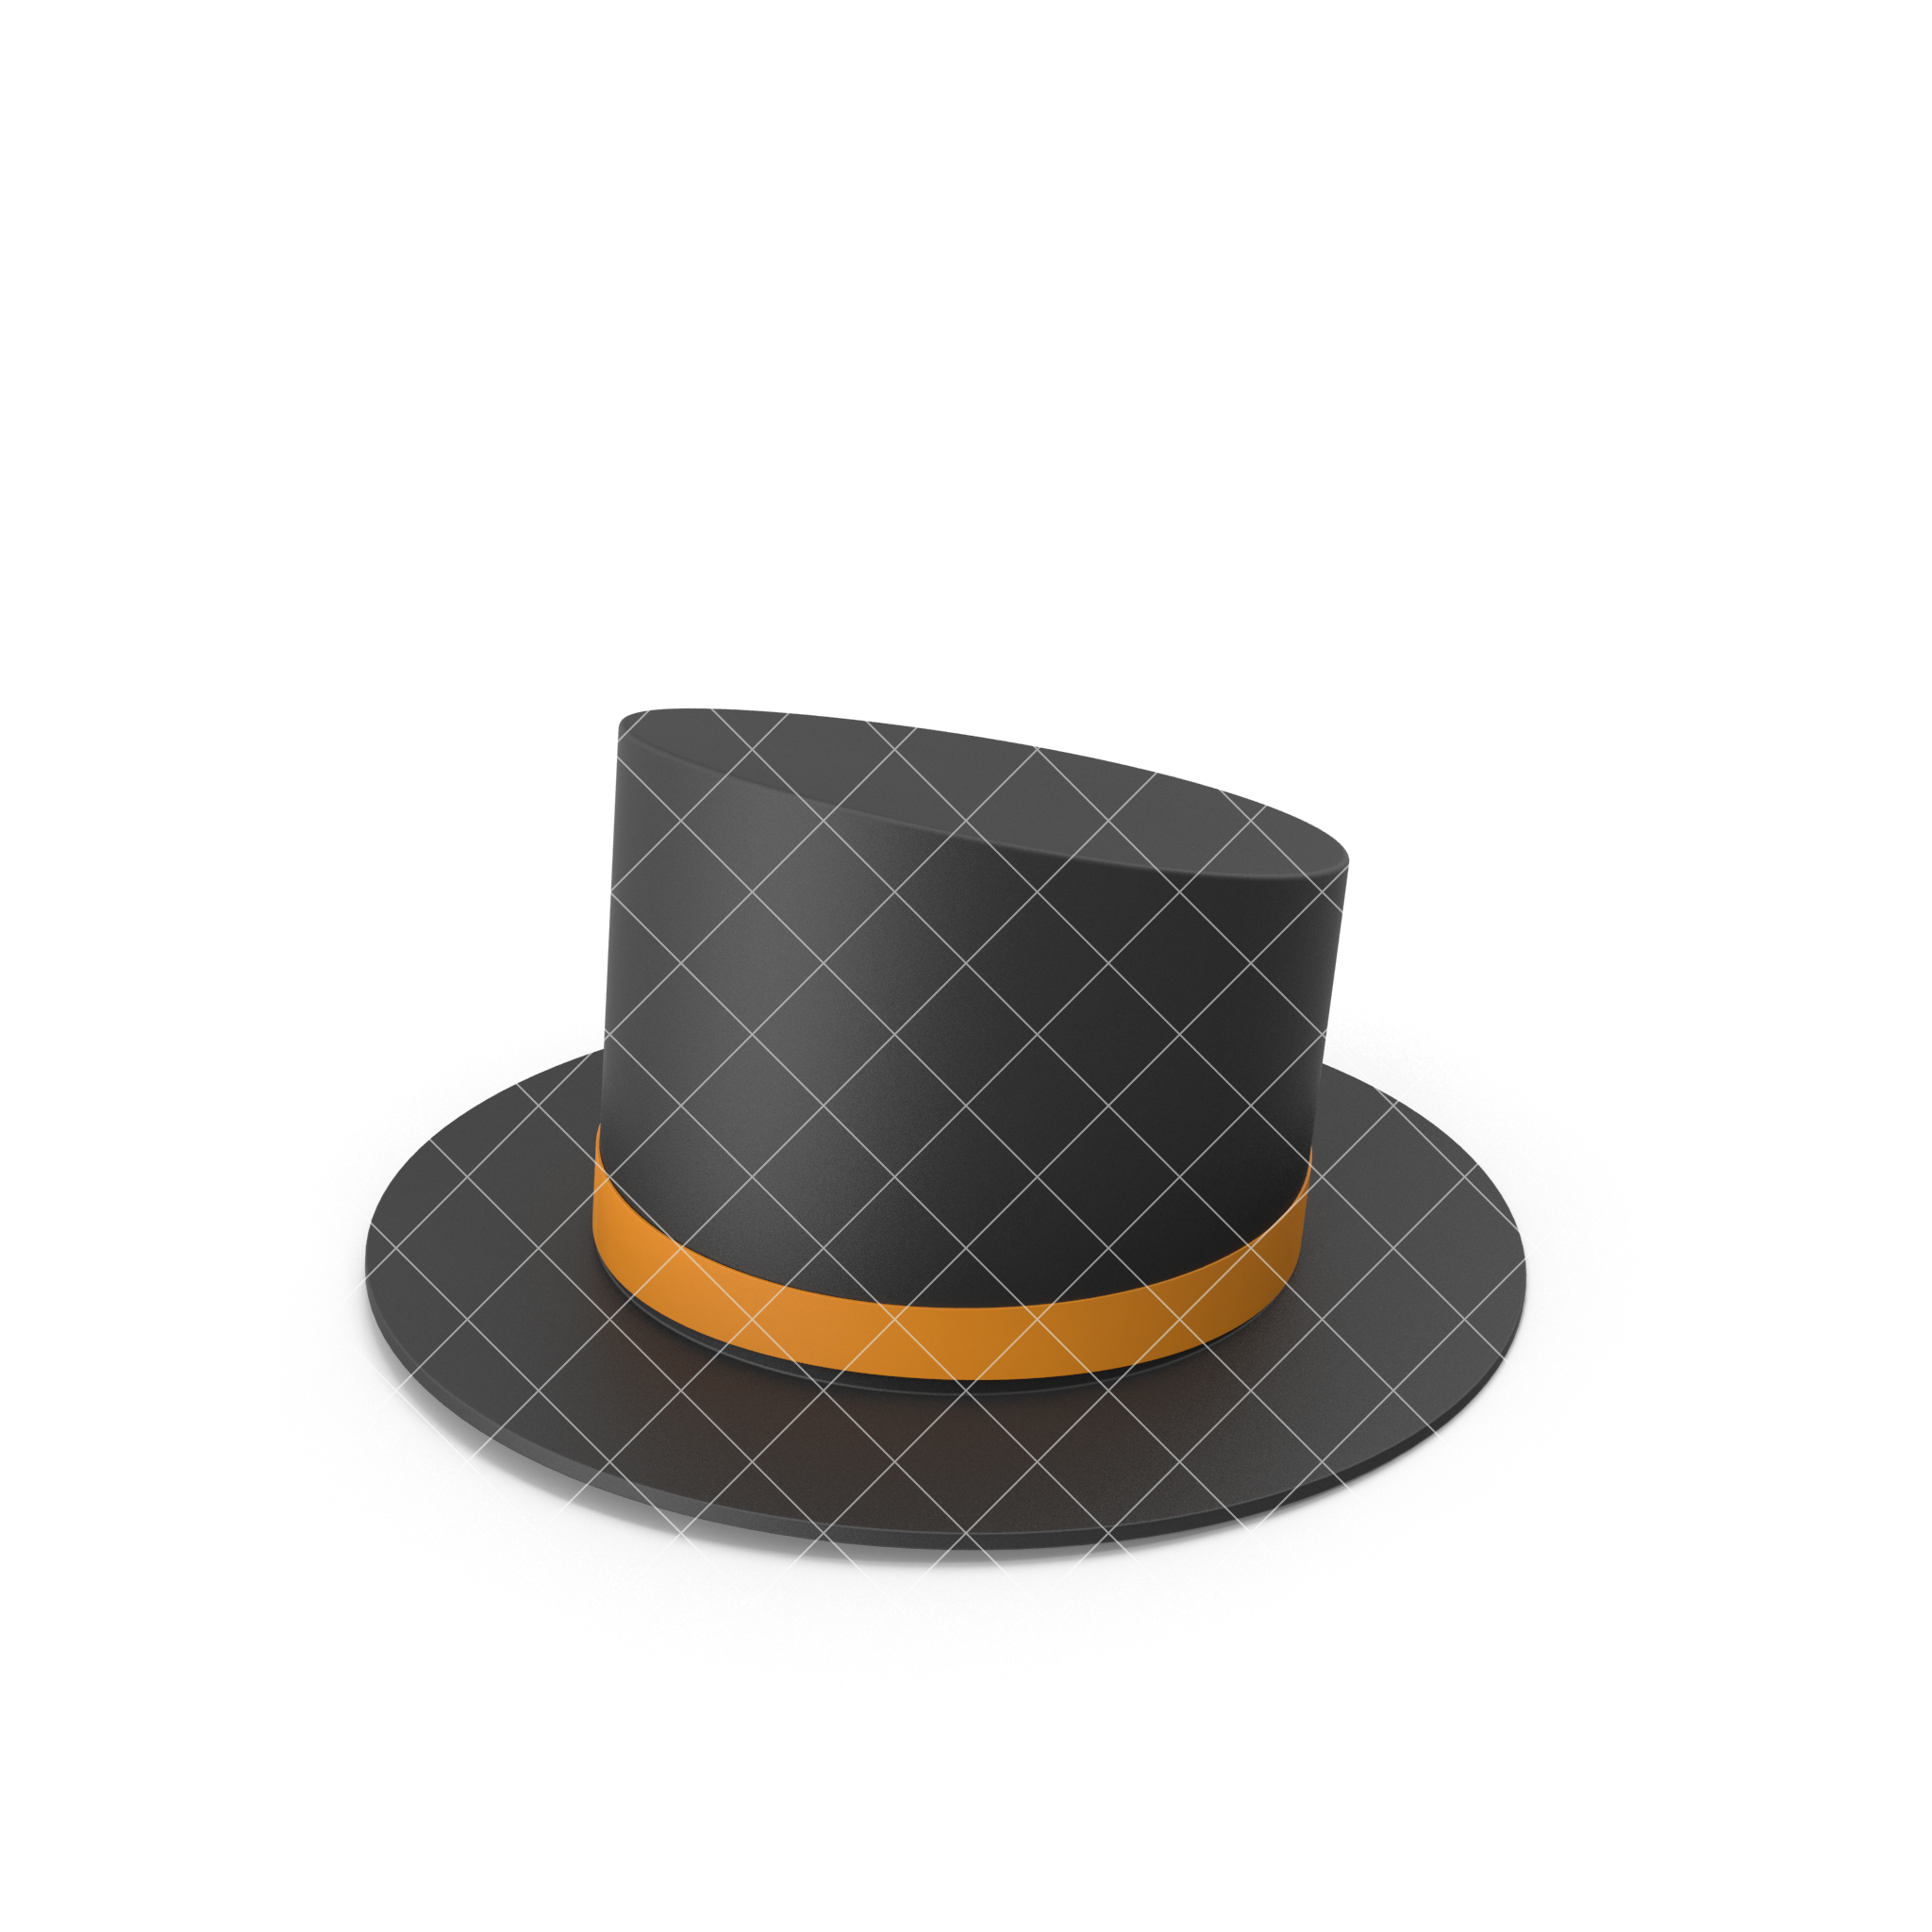 Toy Black Hat Png Psd Free Photoshop Black Hat 360 Pictures